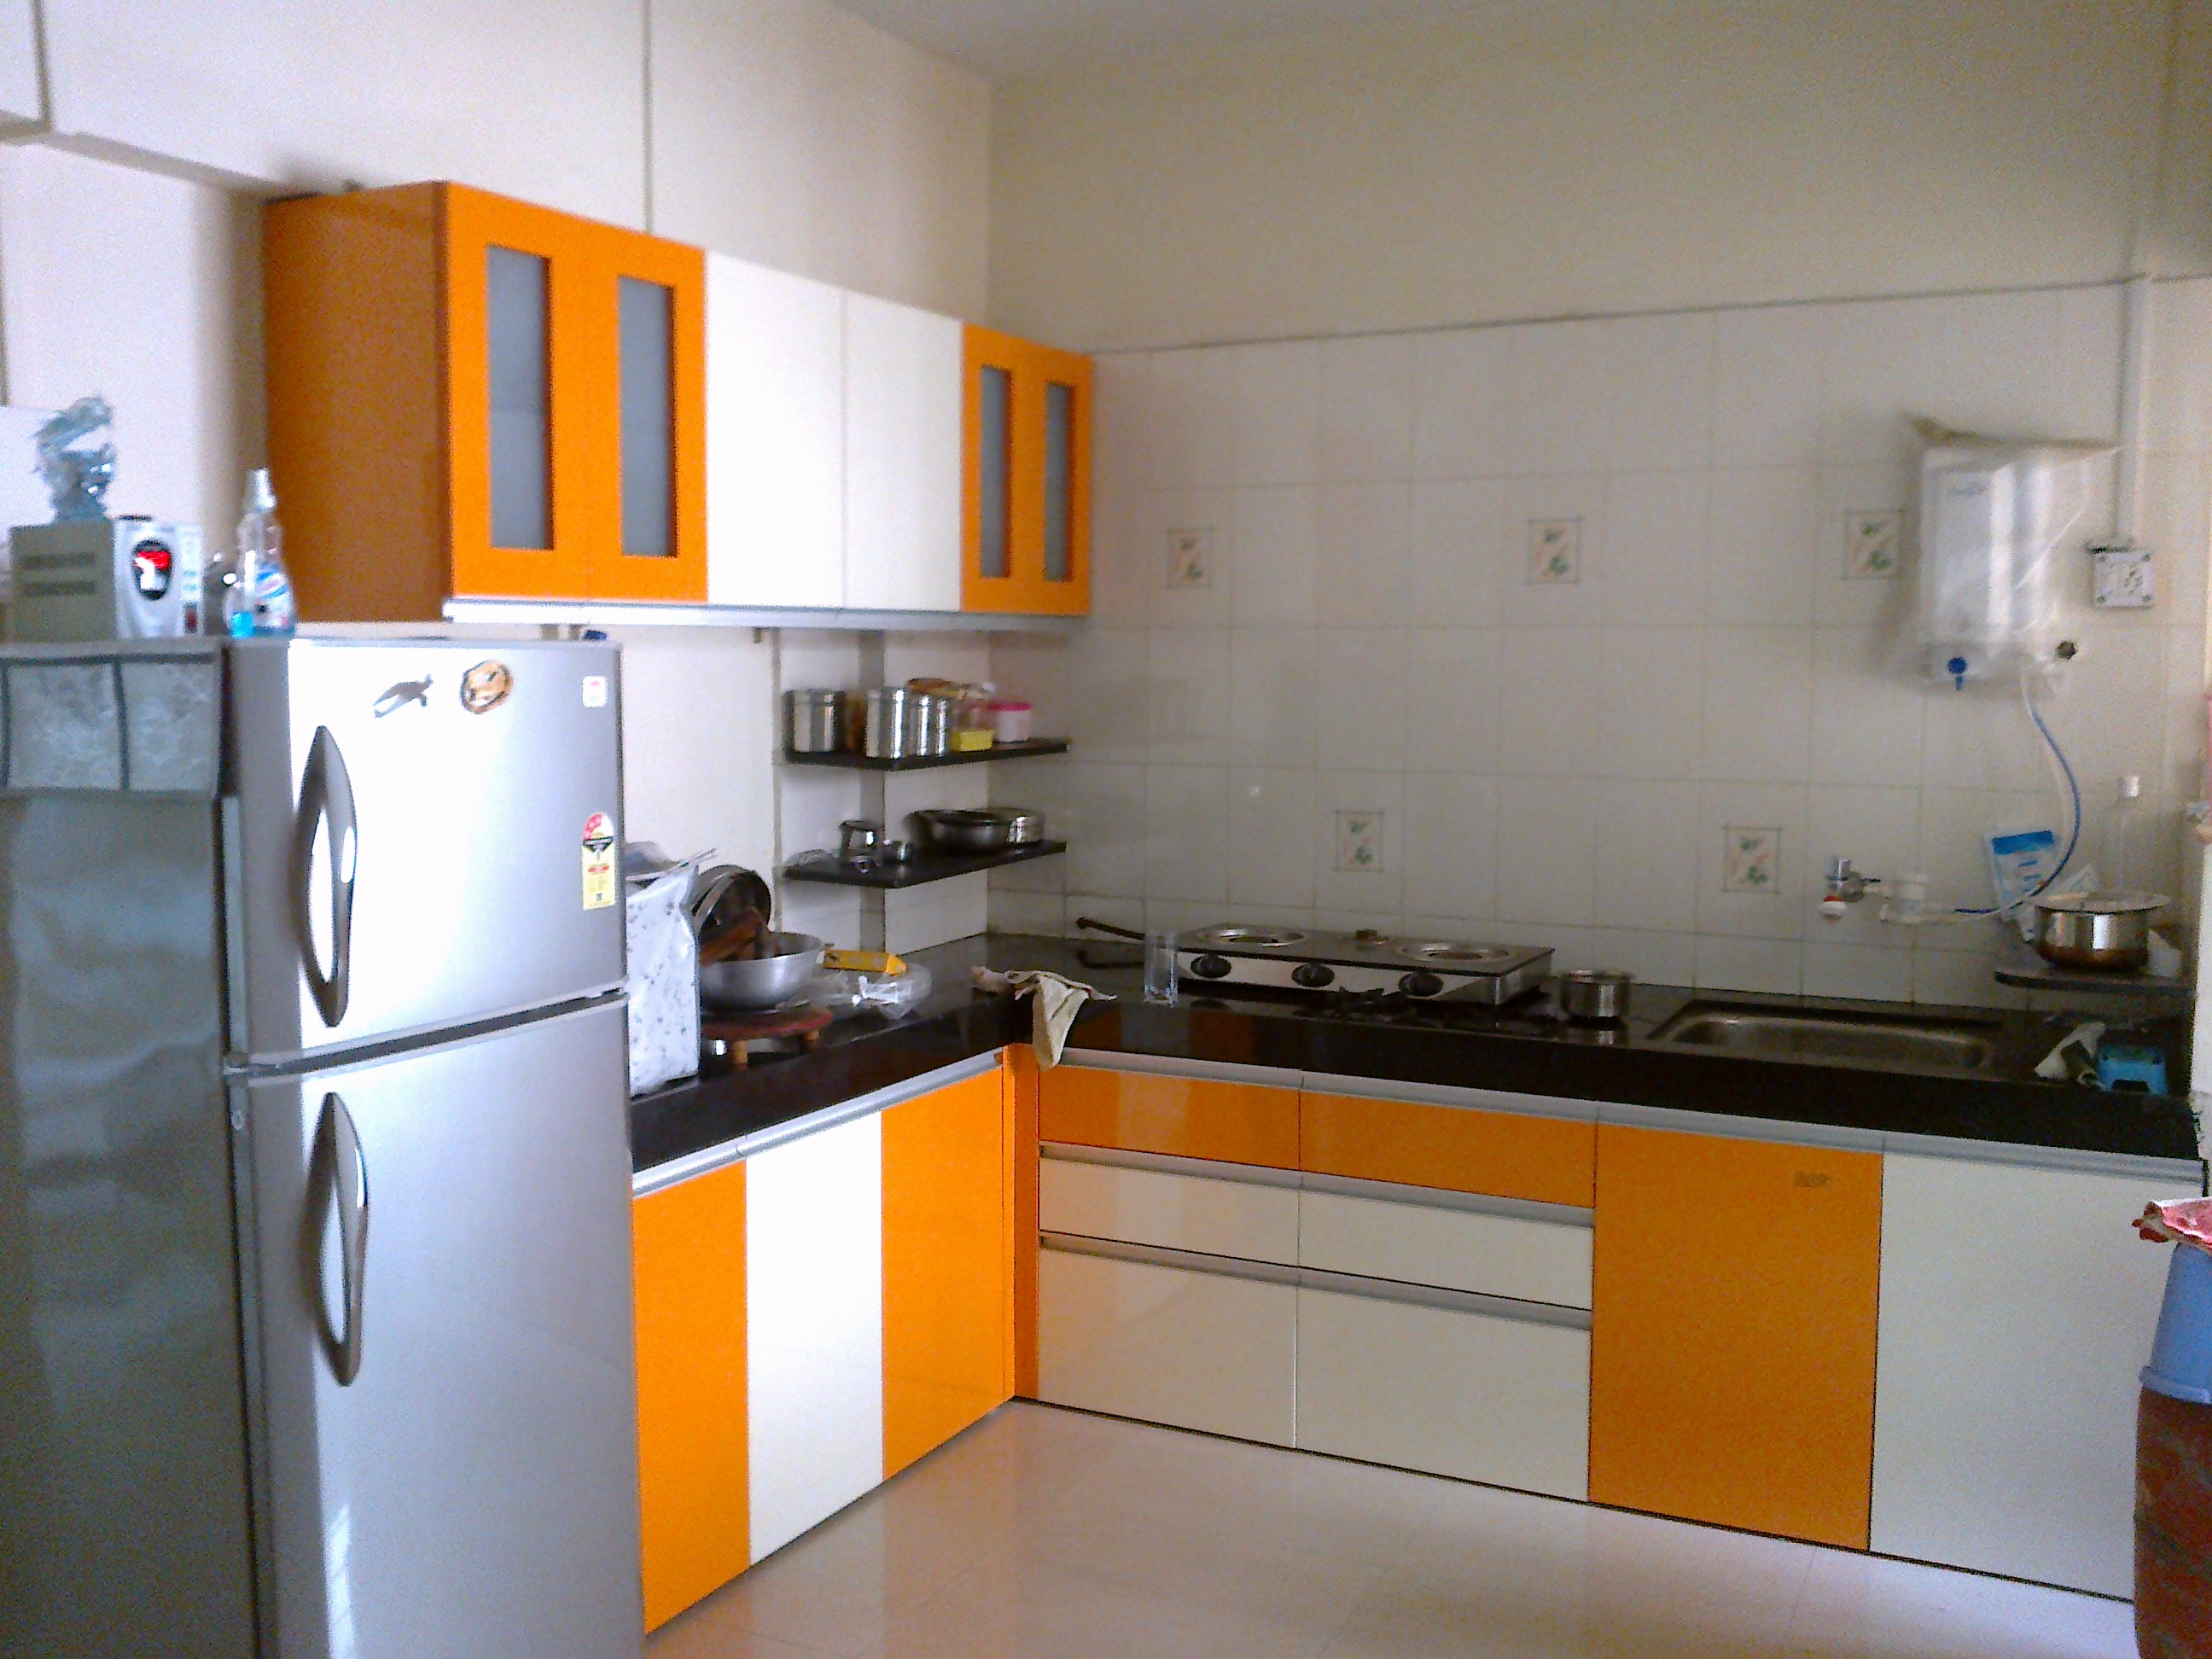 Kitchen decorpune for Interior design kitchen in pune